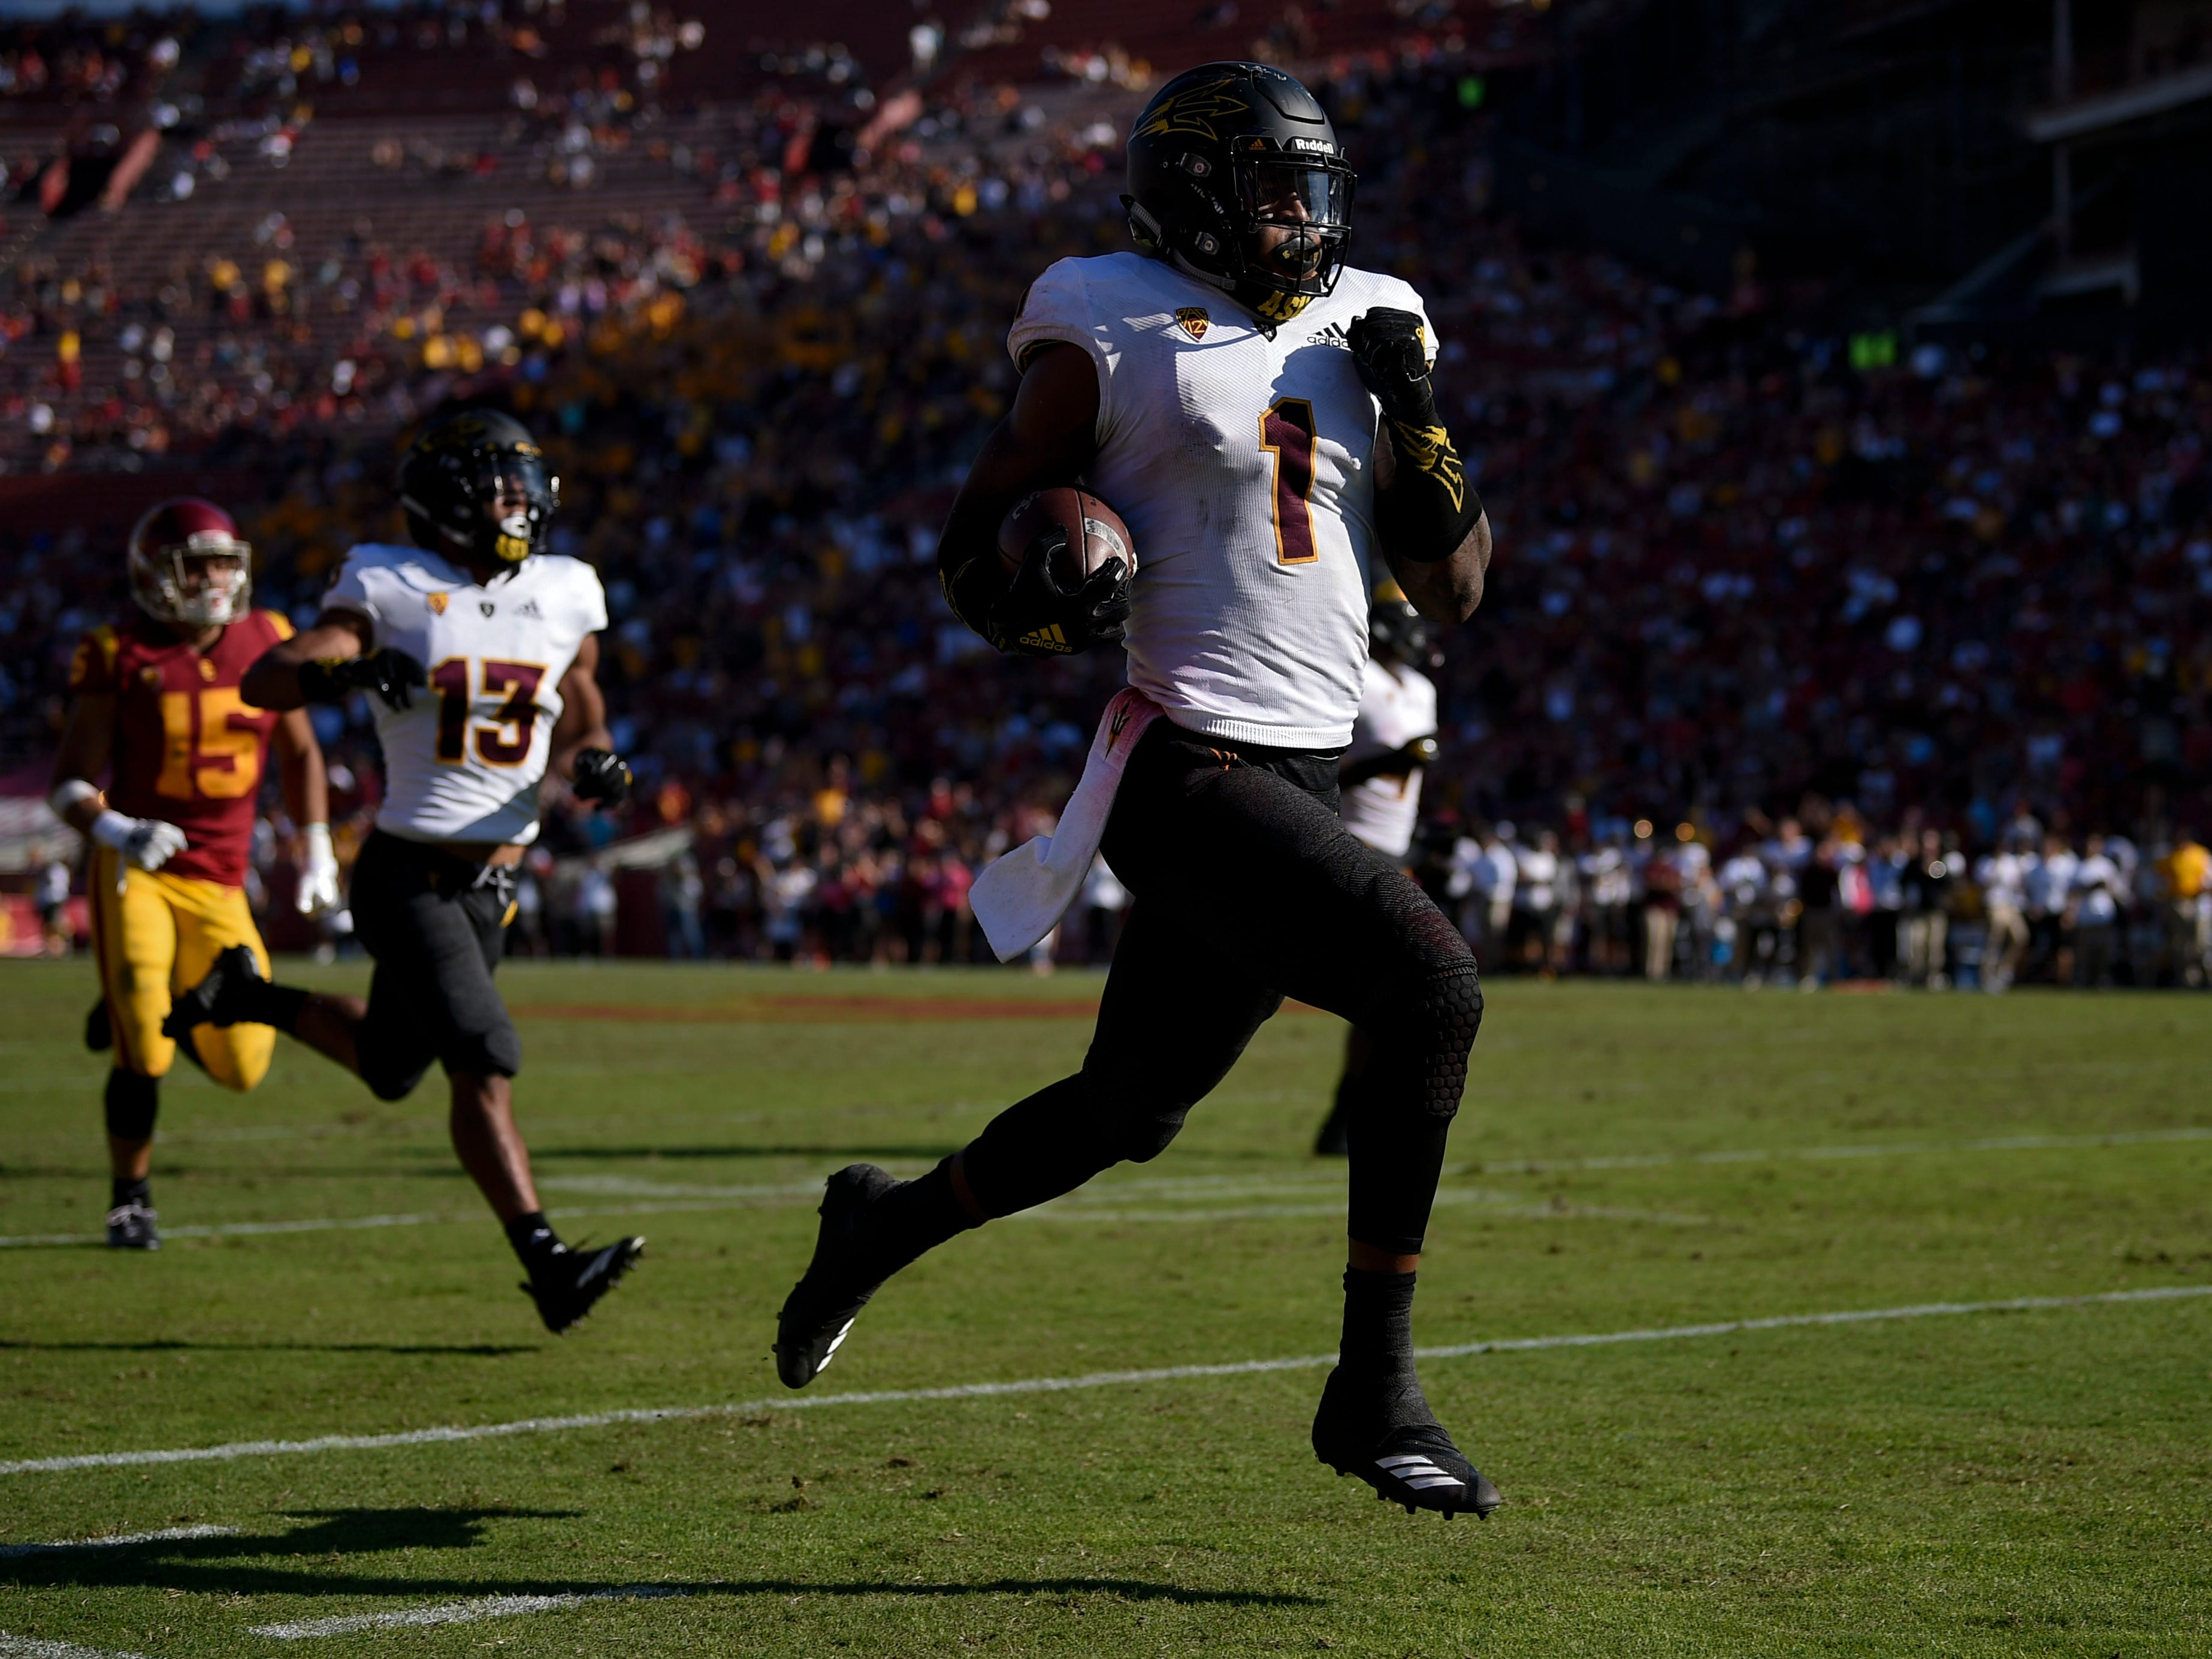 Arizona State Sun Devils wide receiver N'Keal Harry (1) runs a punt return for a touchdown during the second half against the Southern California Trojans at Los Angeles Memorial Coliseum.